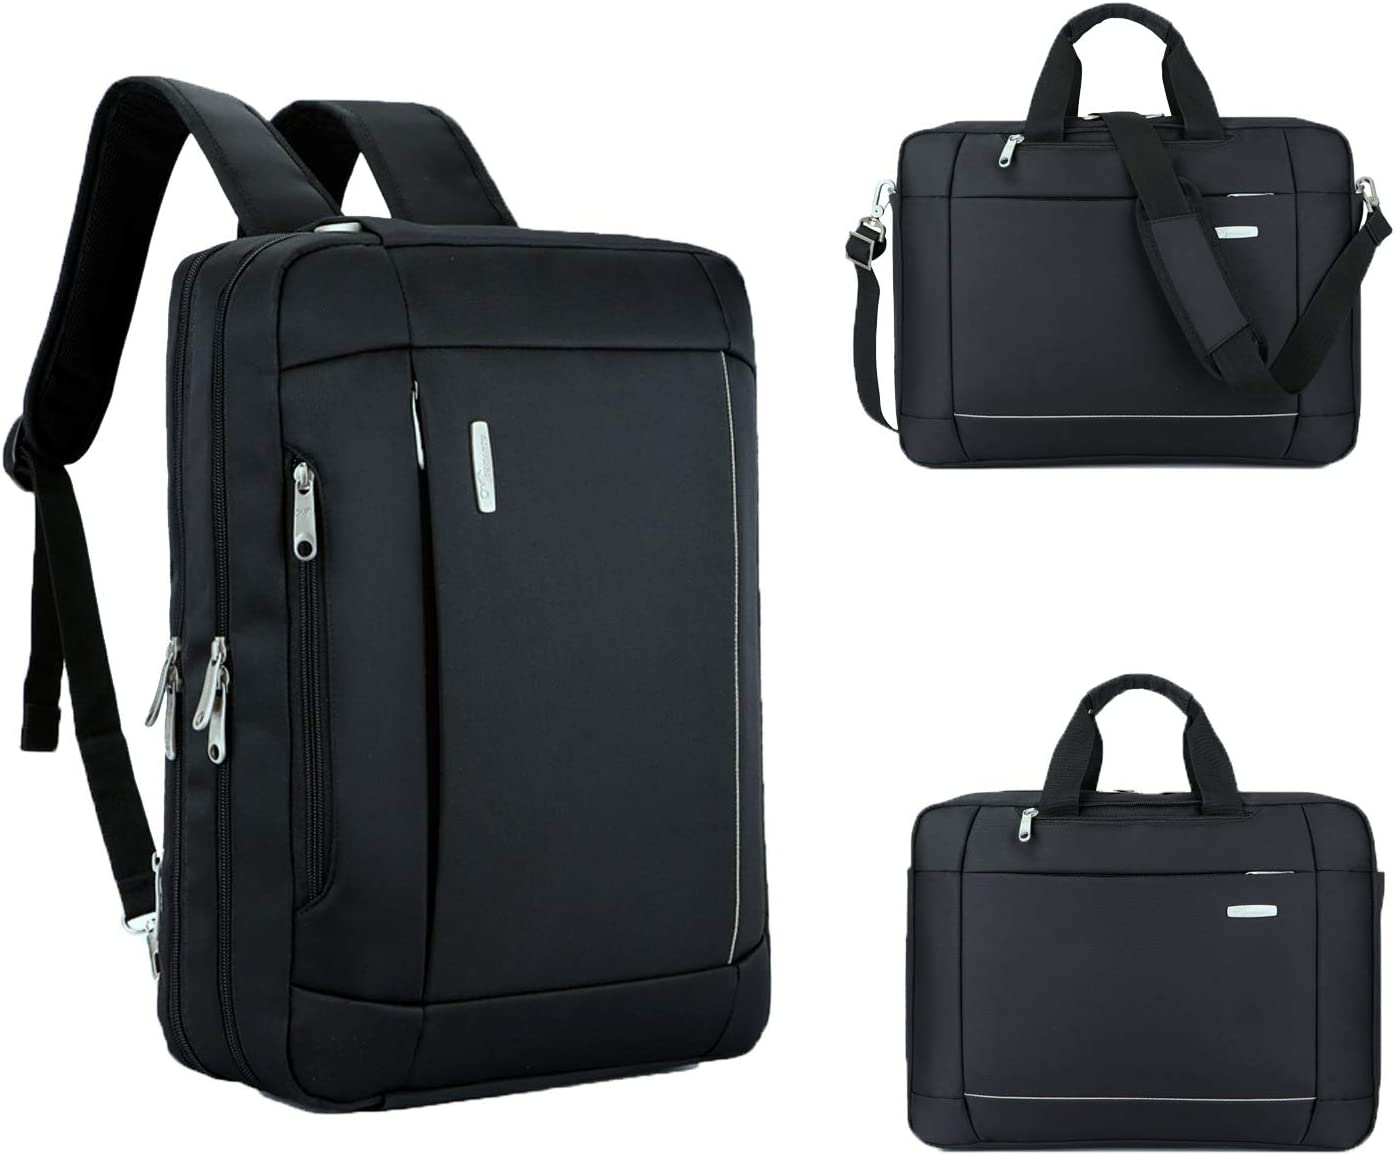 15.6 Inch Laptop Messenger Bag Multi-function Business Briefcase Waterproof Convertible Backpack for Laptop/MacBook/Tablet Black